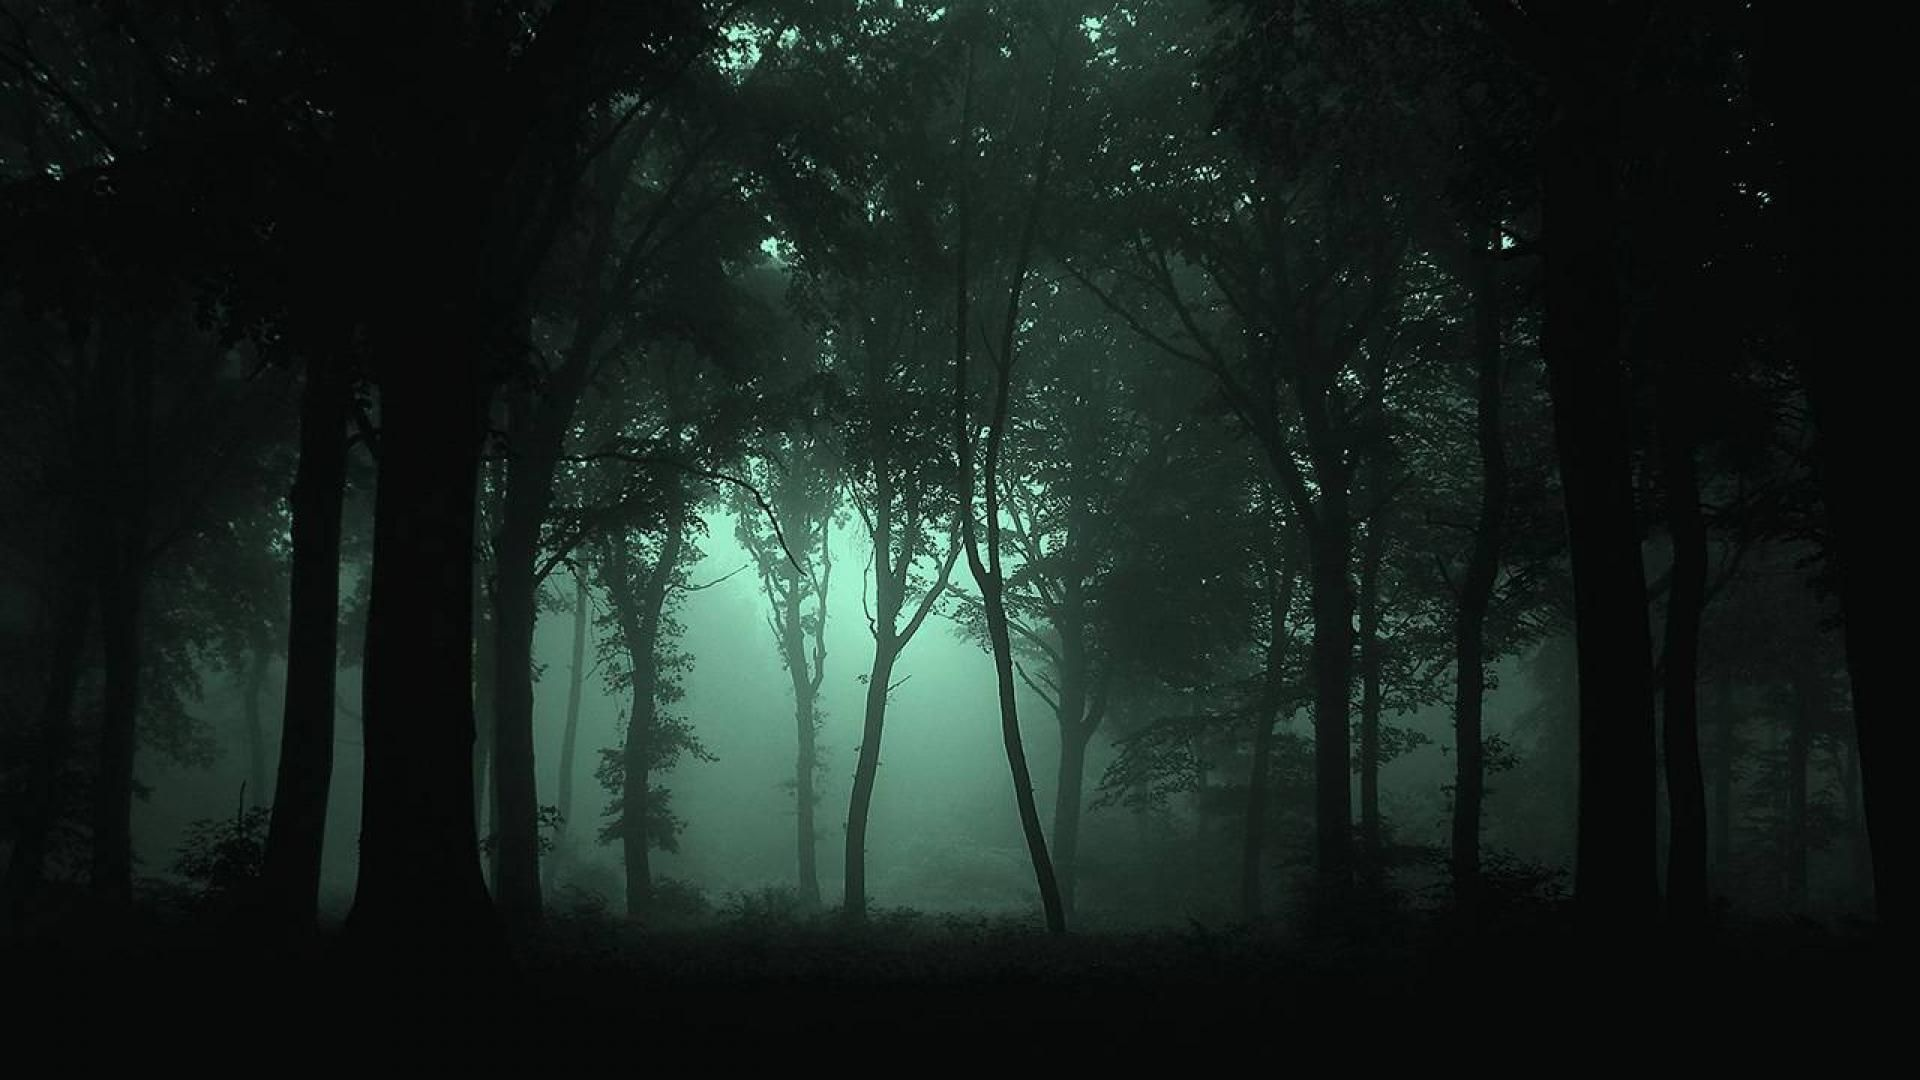 Dark Forest Wallpapers High Resolution Background Hd Wallpaper Android For Mobile Free Download 1920x1080 Iphone 5